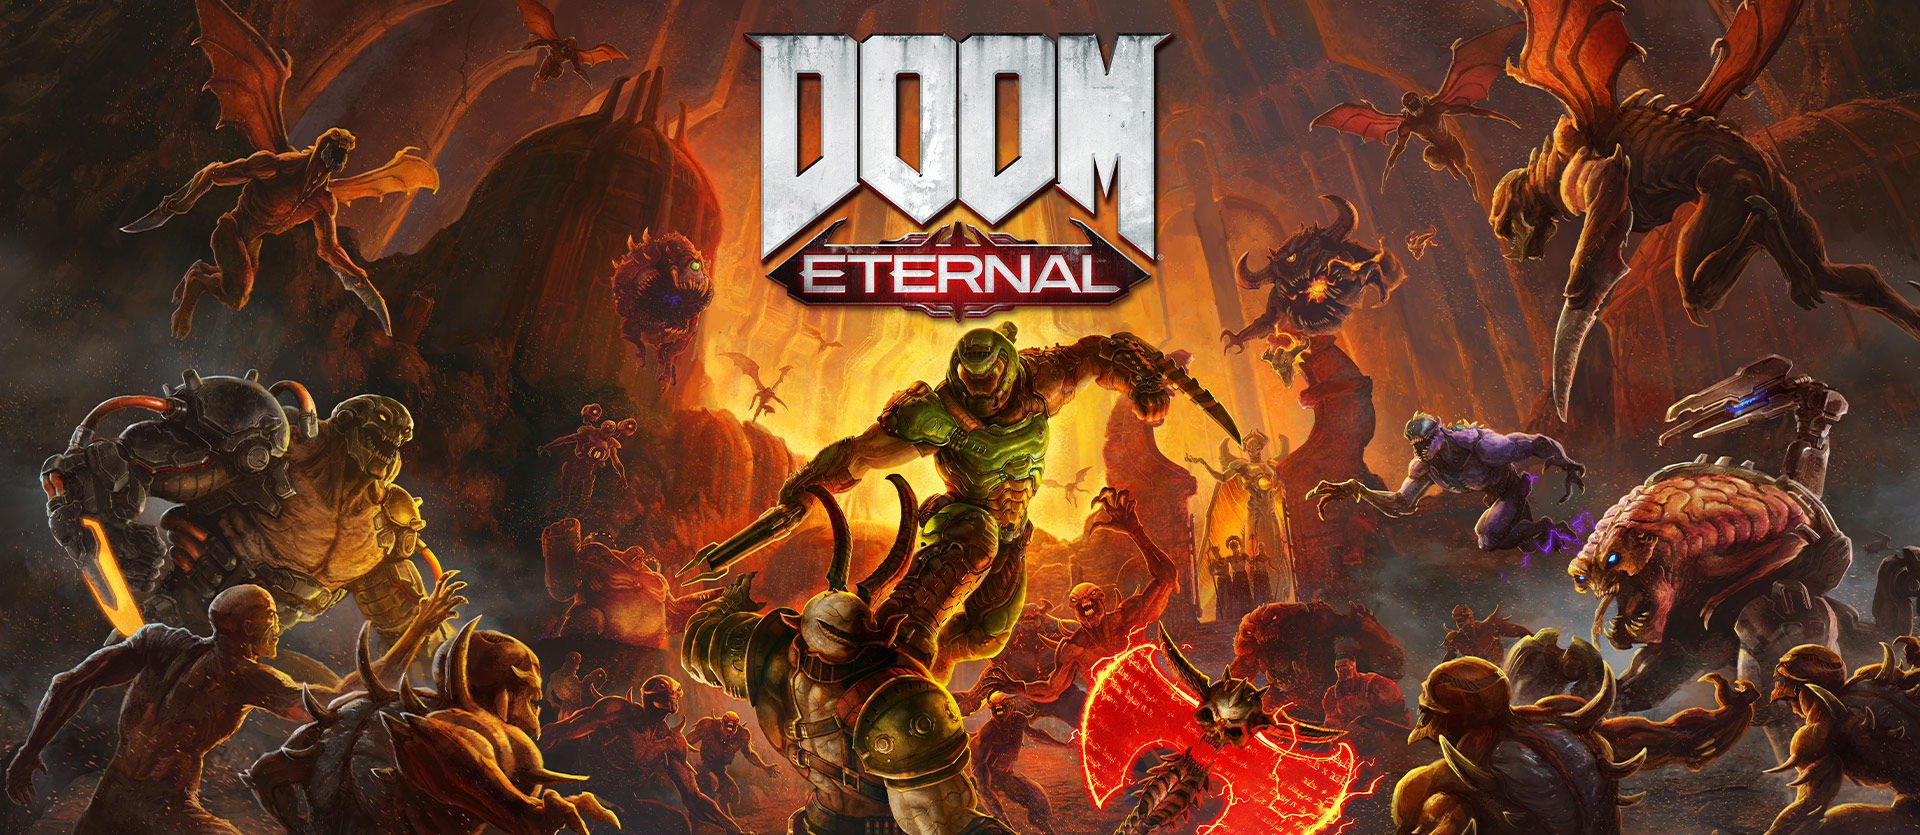 DOOM Eternal, Character fighting a horde of monsters